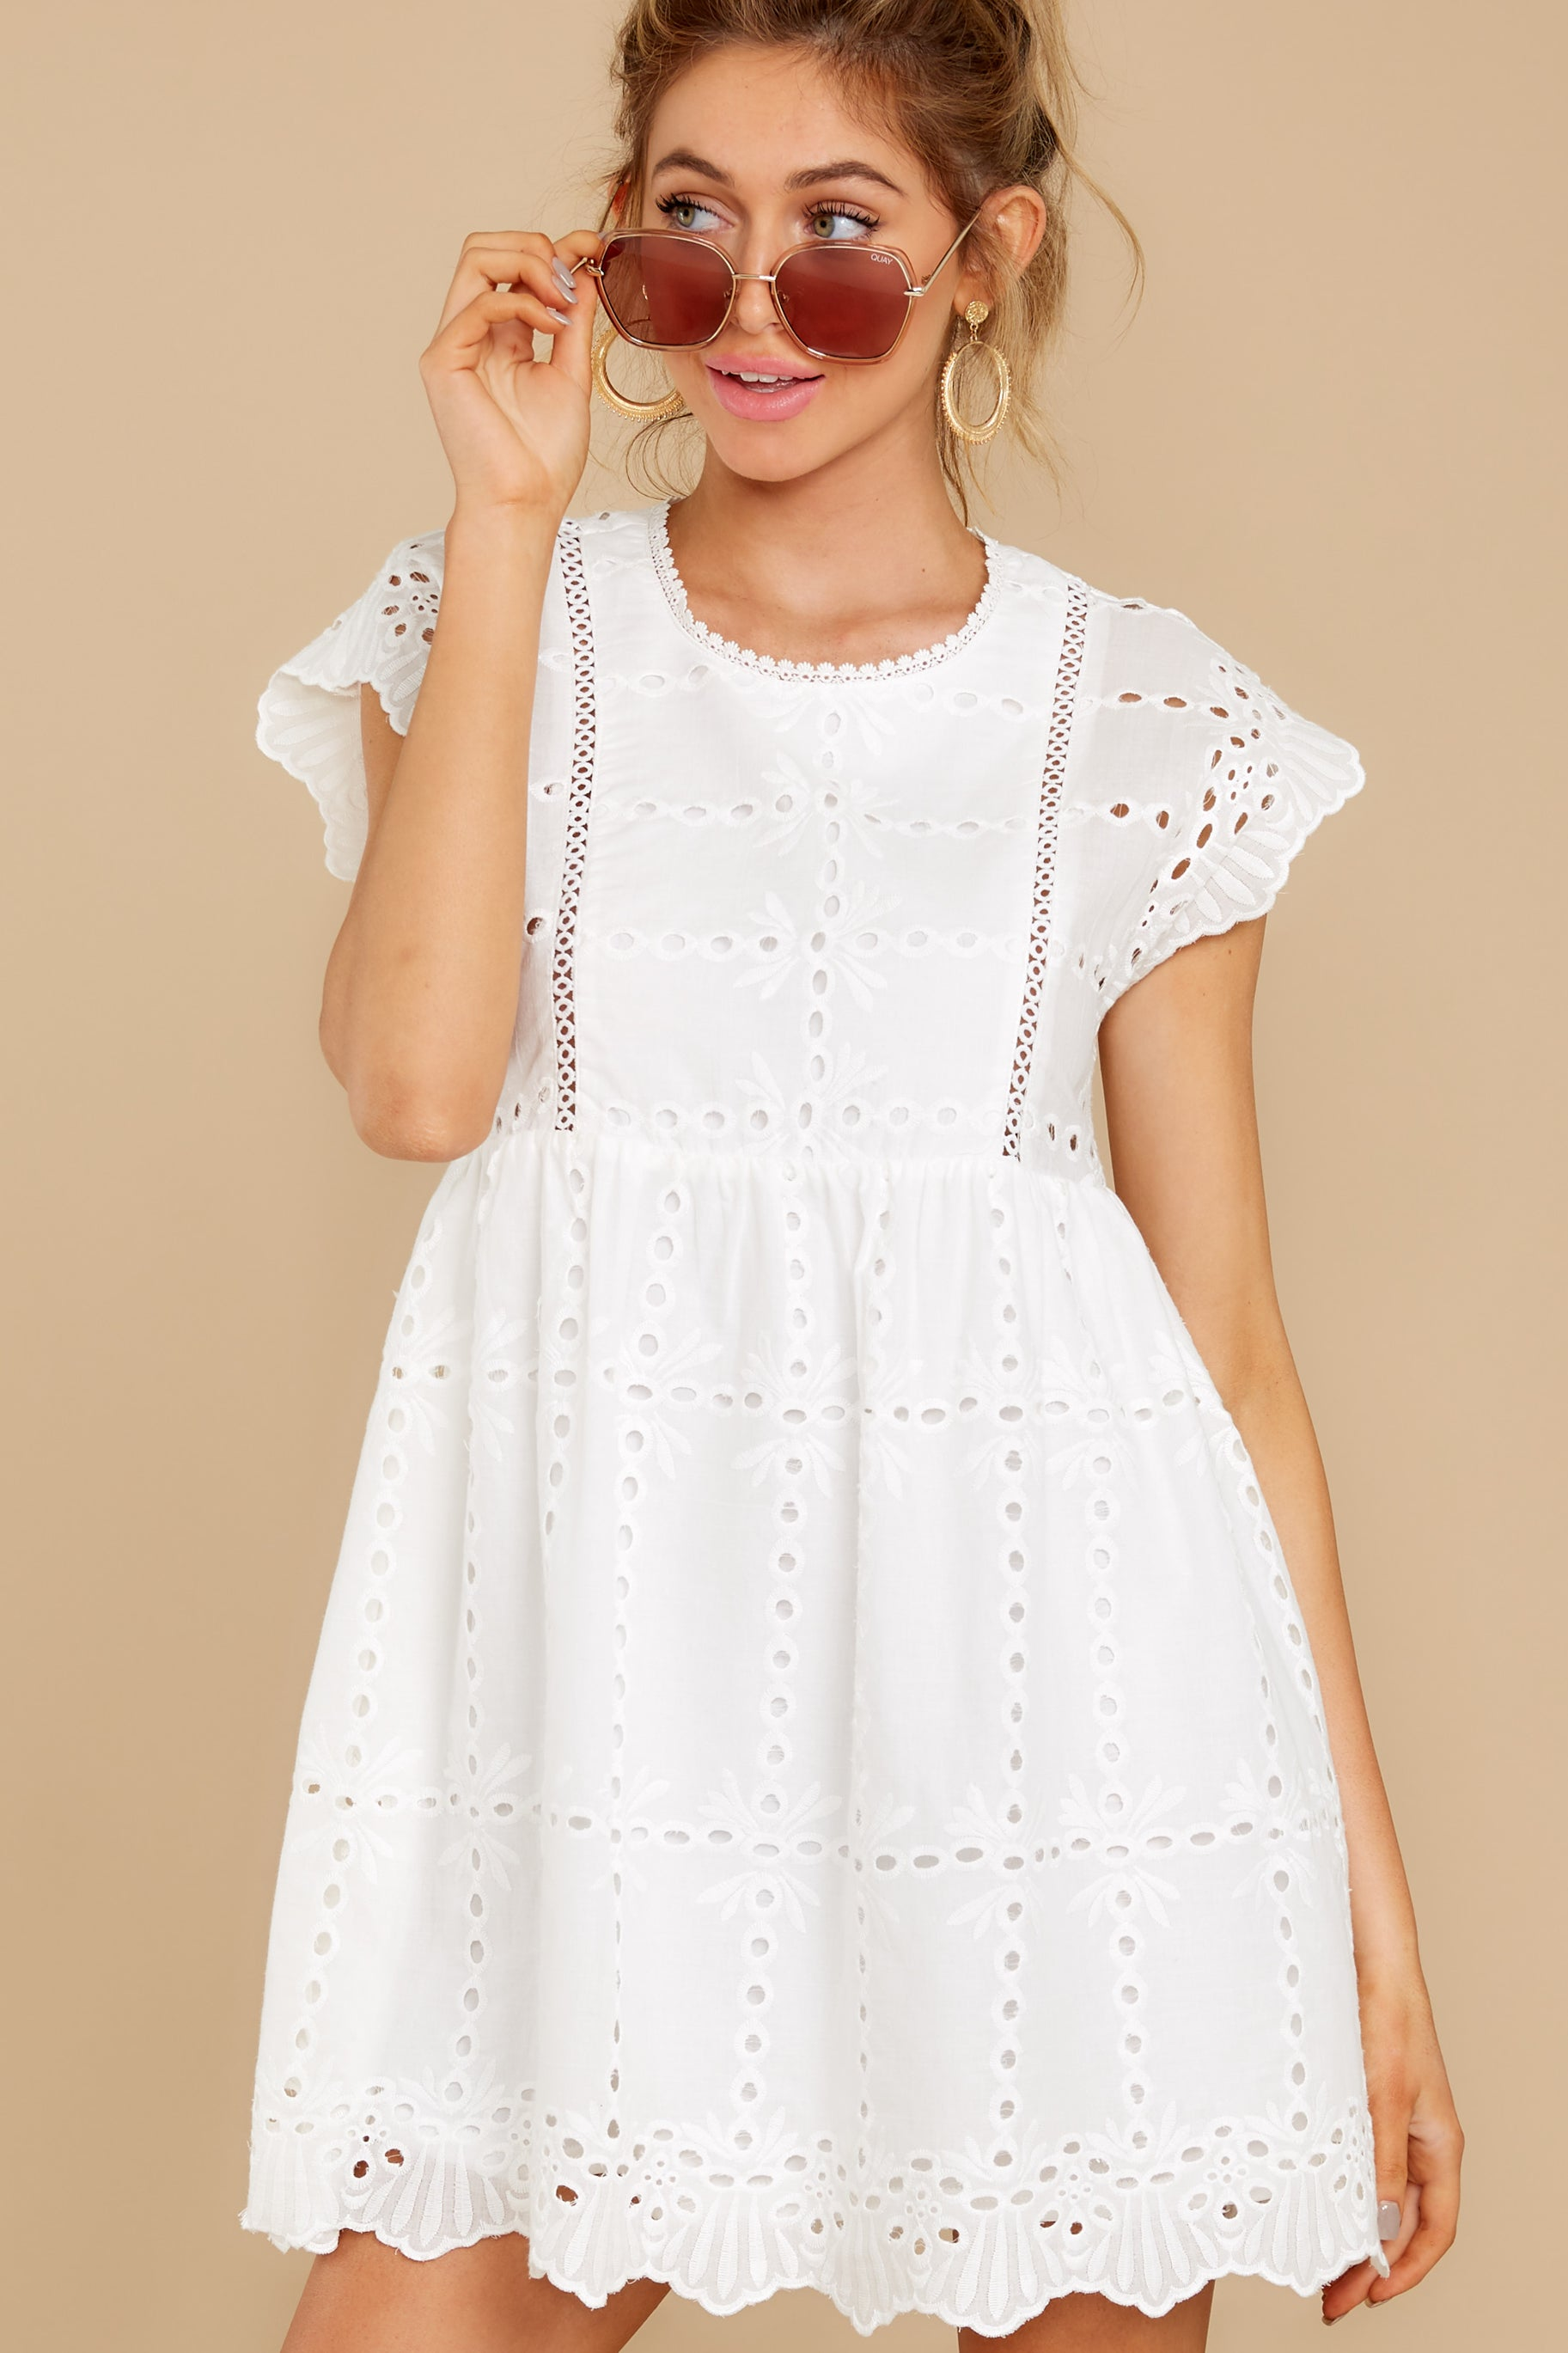 5 Better To Be Sweet White Eyelet Dress at reddress.com